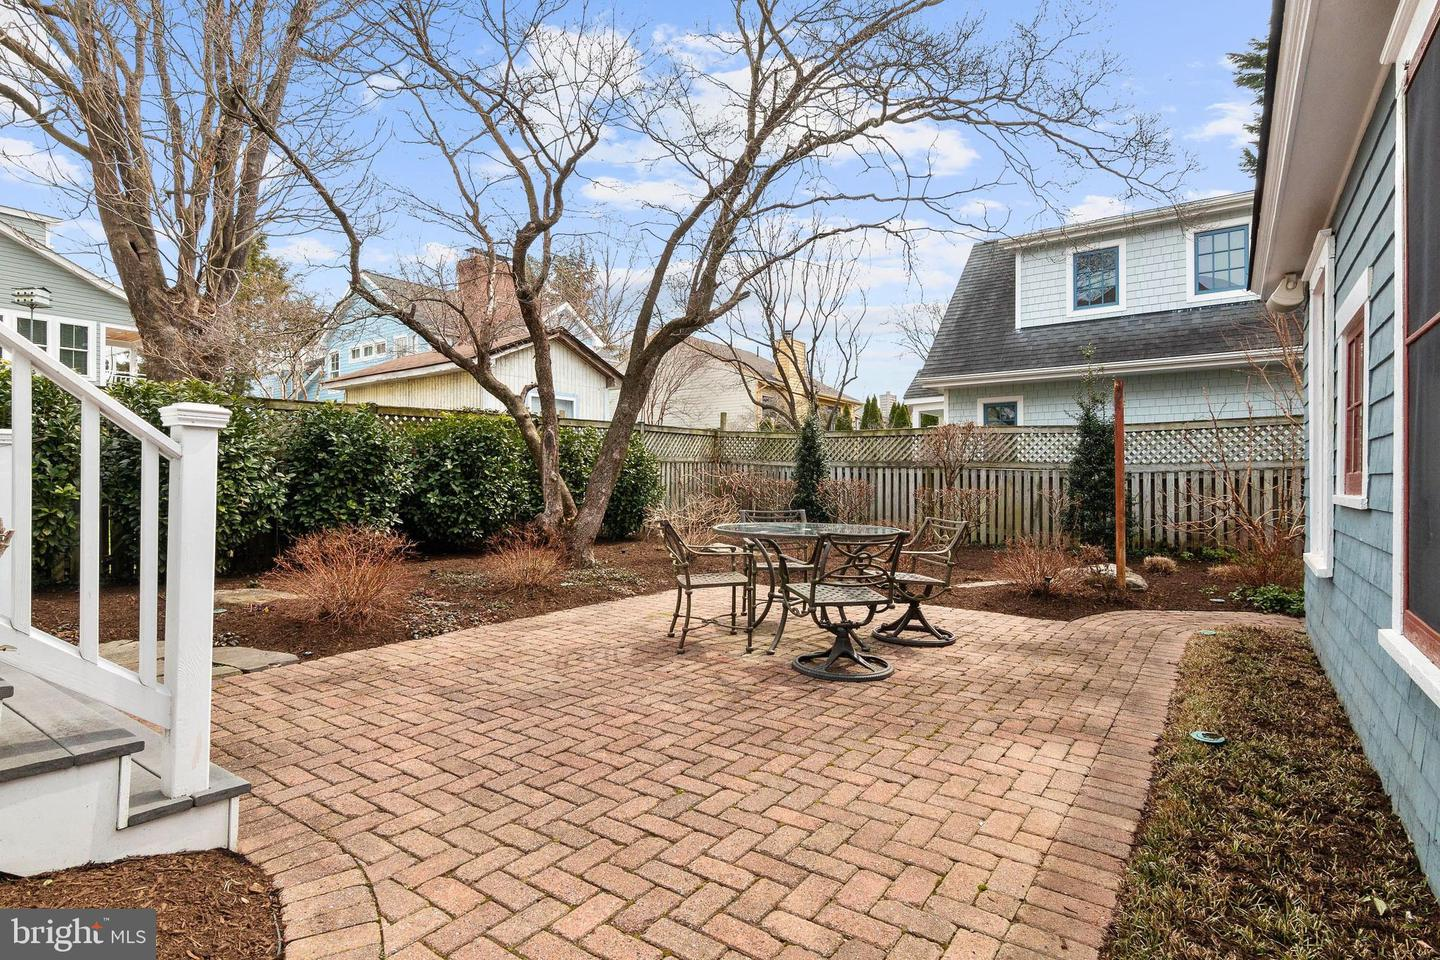 Additional photo for property listing at 313 Chesapeake Ave Annapolis, Maryland 21403 United States